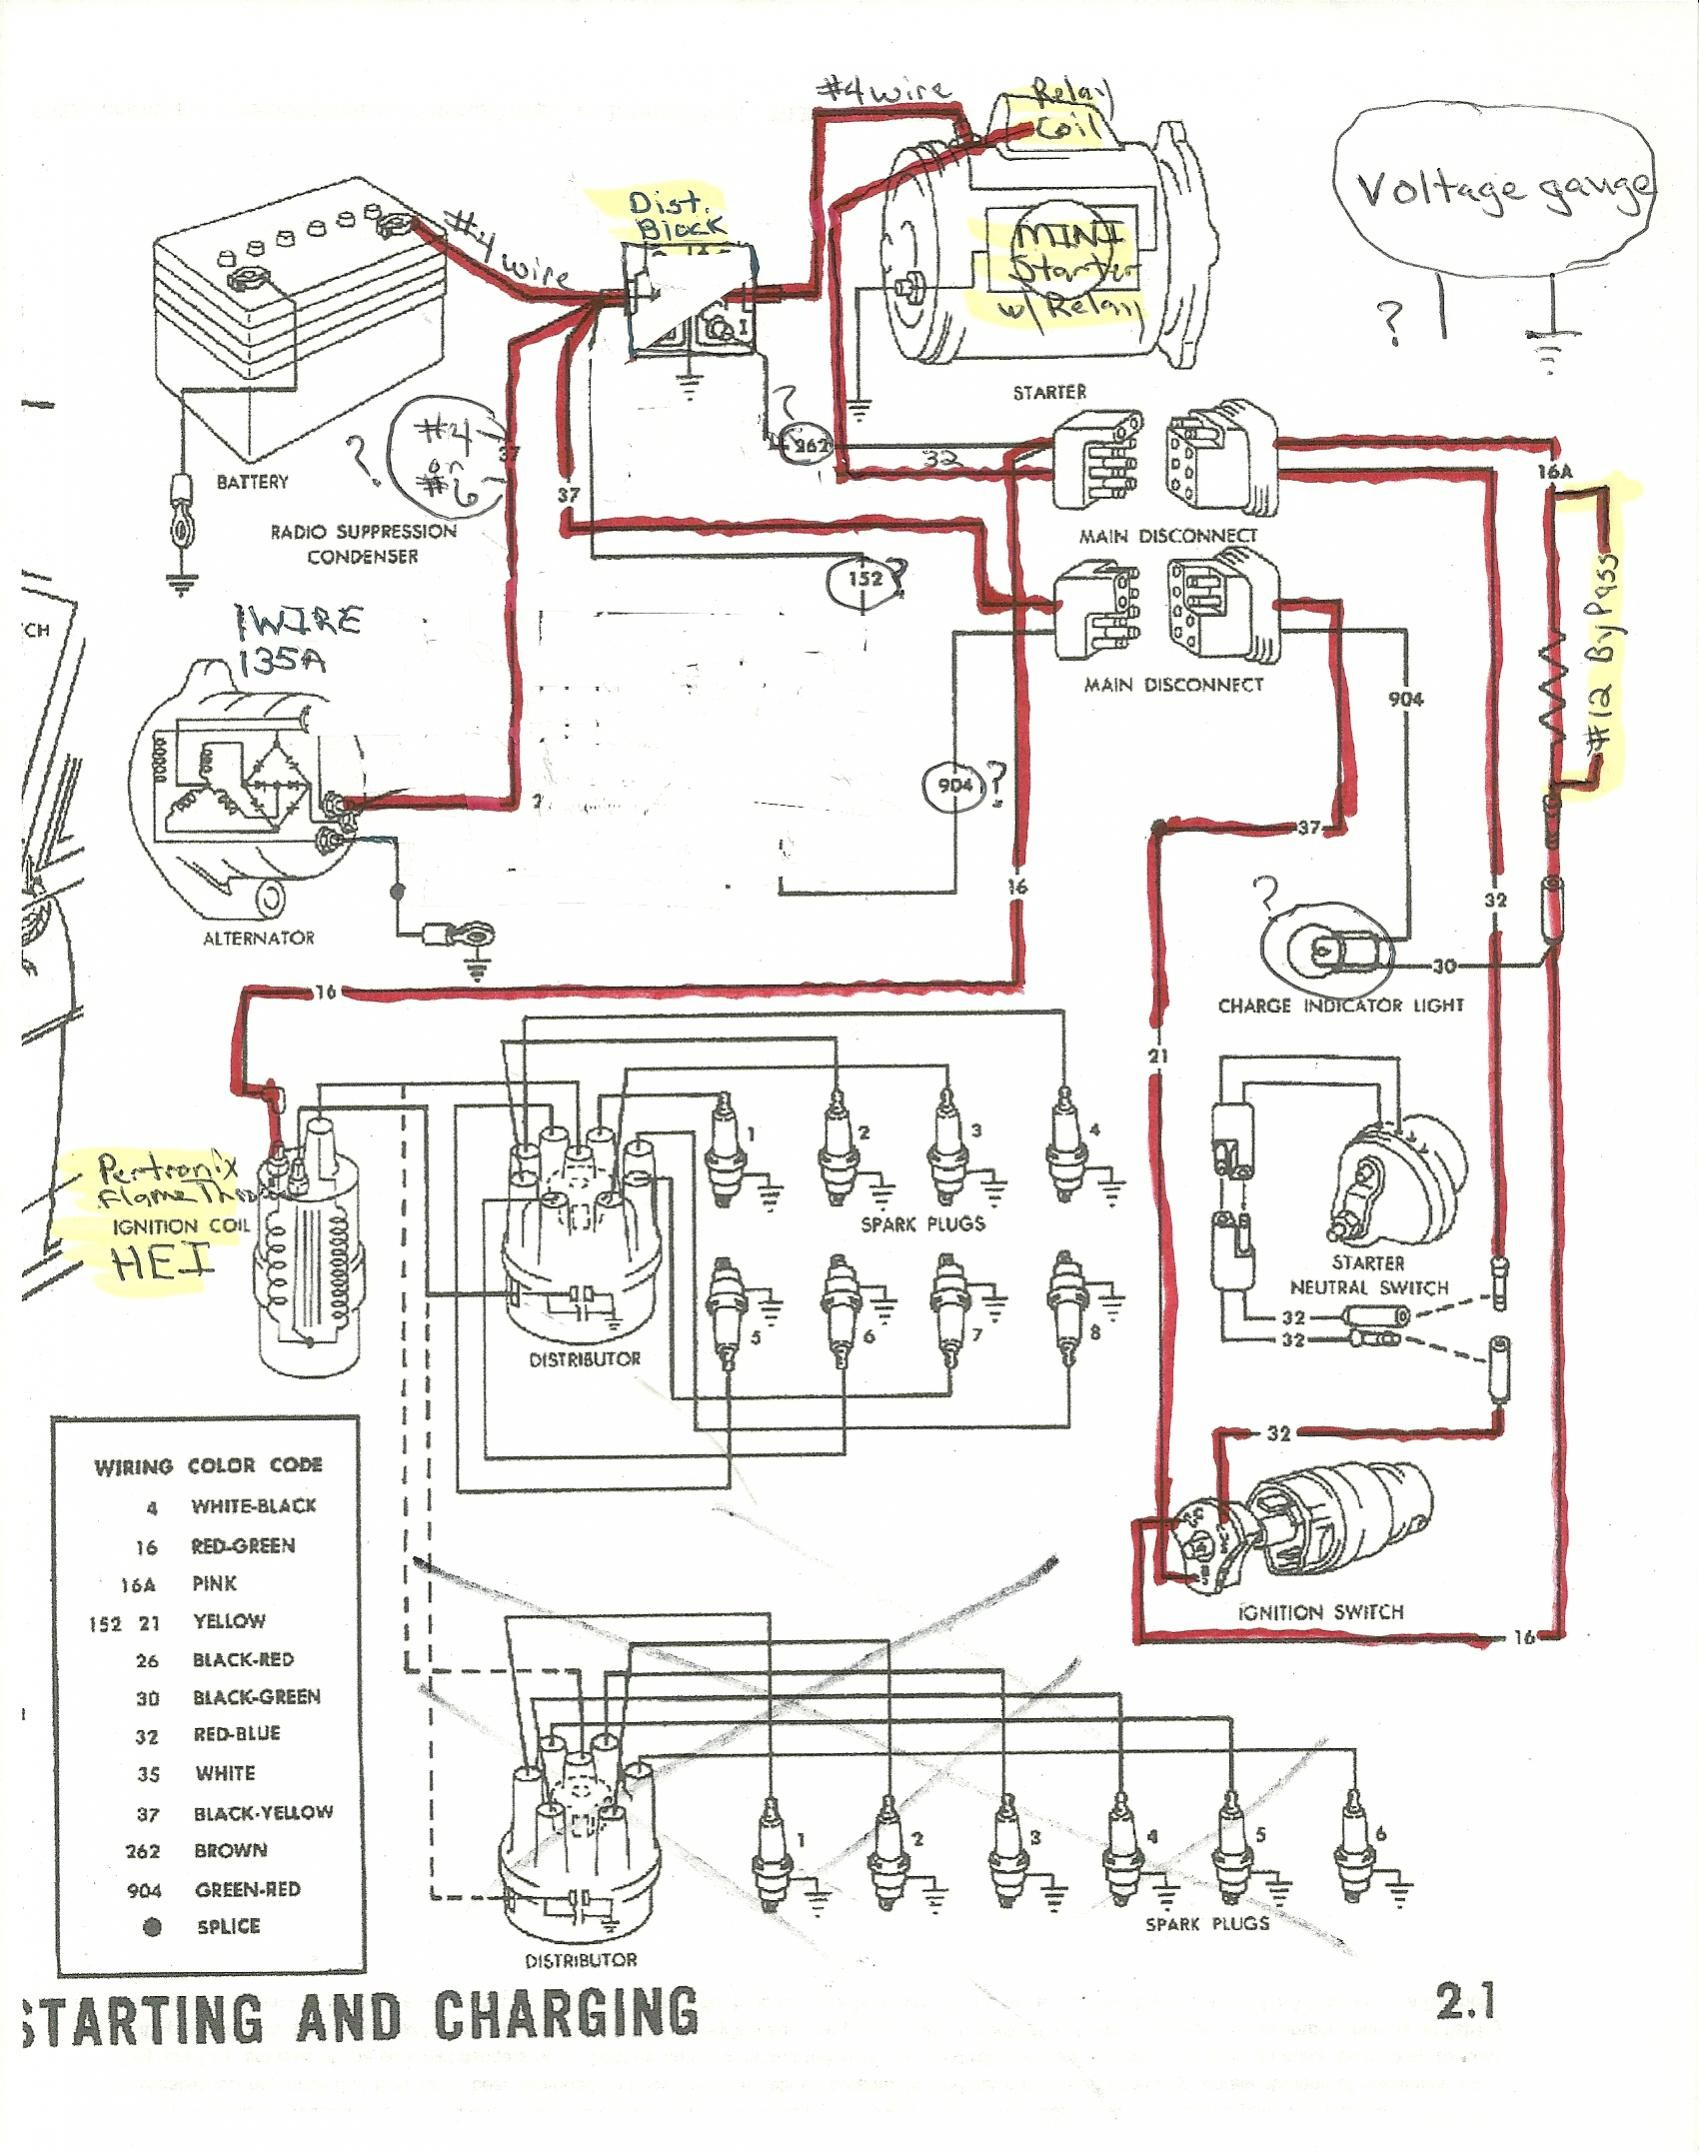 1965 Ford Mustang Alternator Wiring - Electrical Drawing Wiring ...